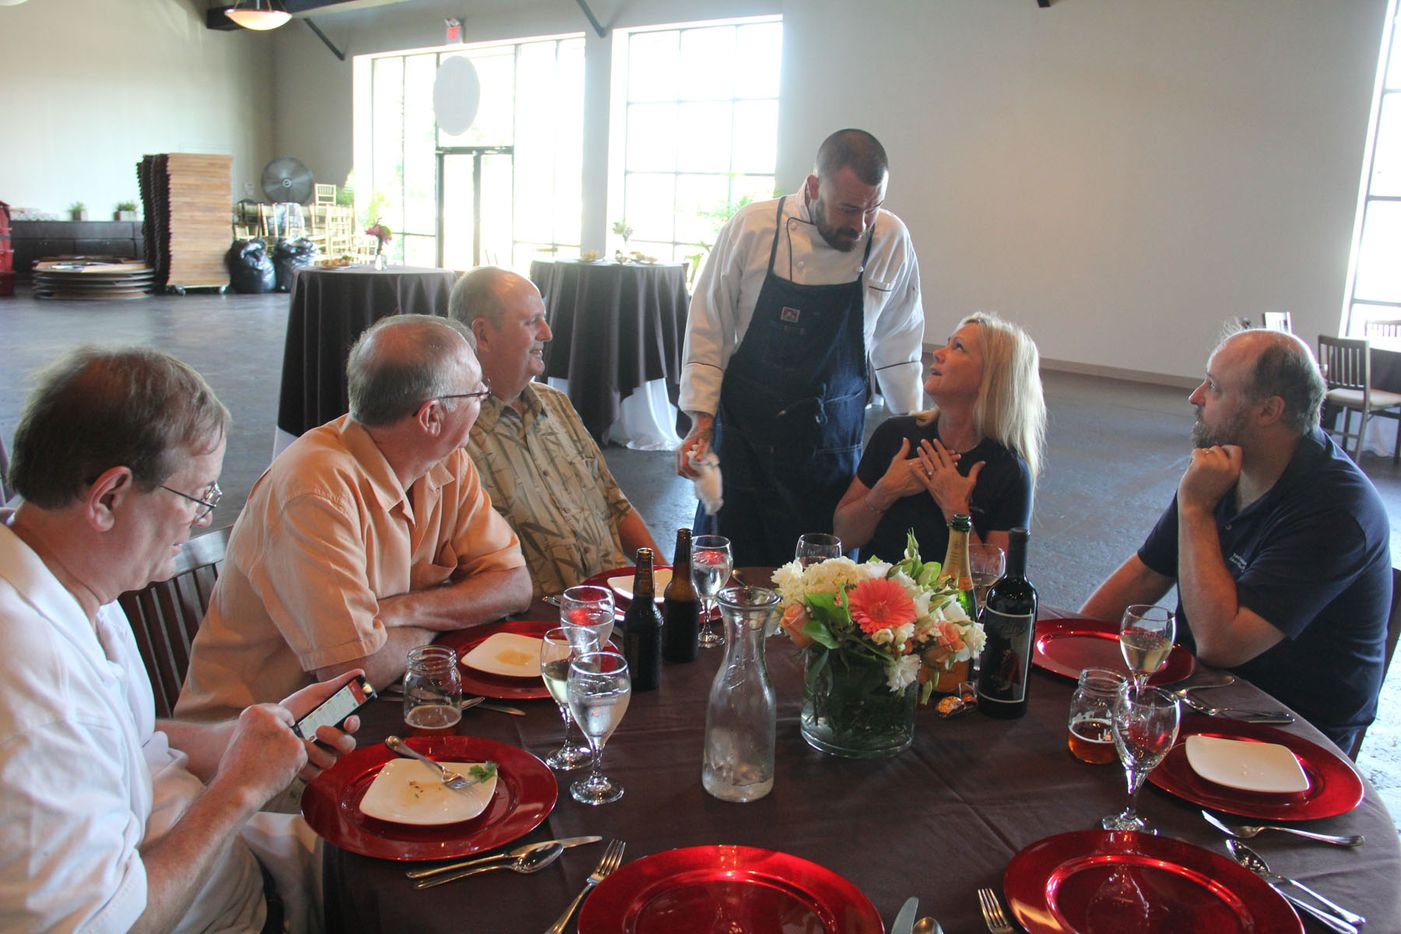 Chef Justin Box chats with guests at his summer pop up dinner Summer Shenanigans at 3015 in Trinity Groves on July 26,2015.